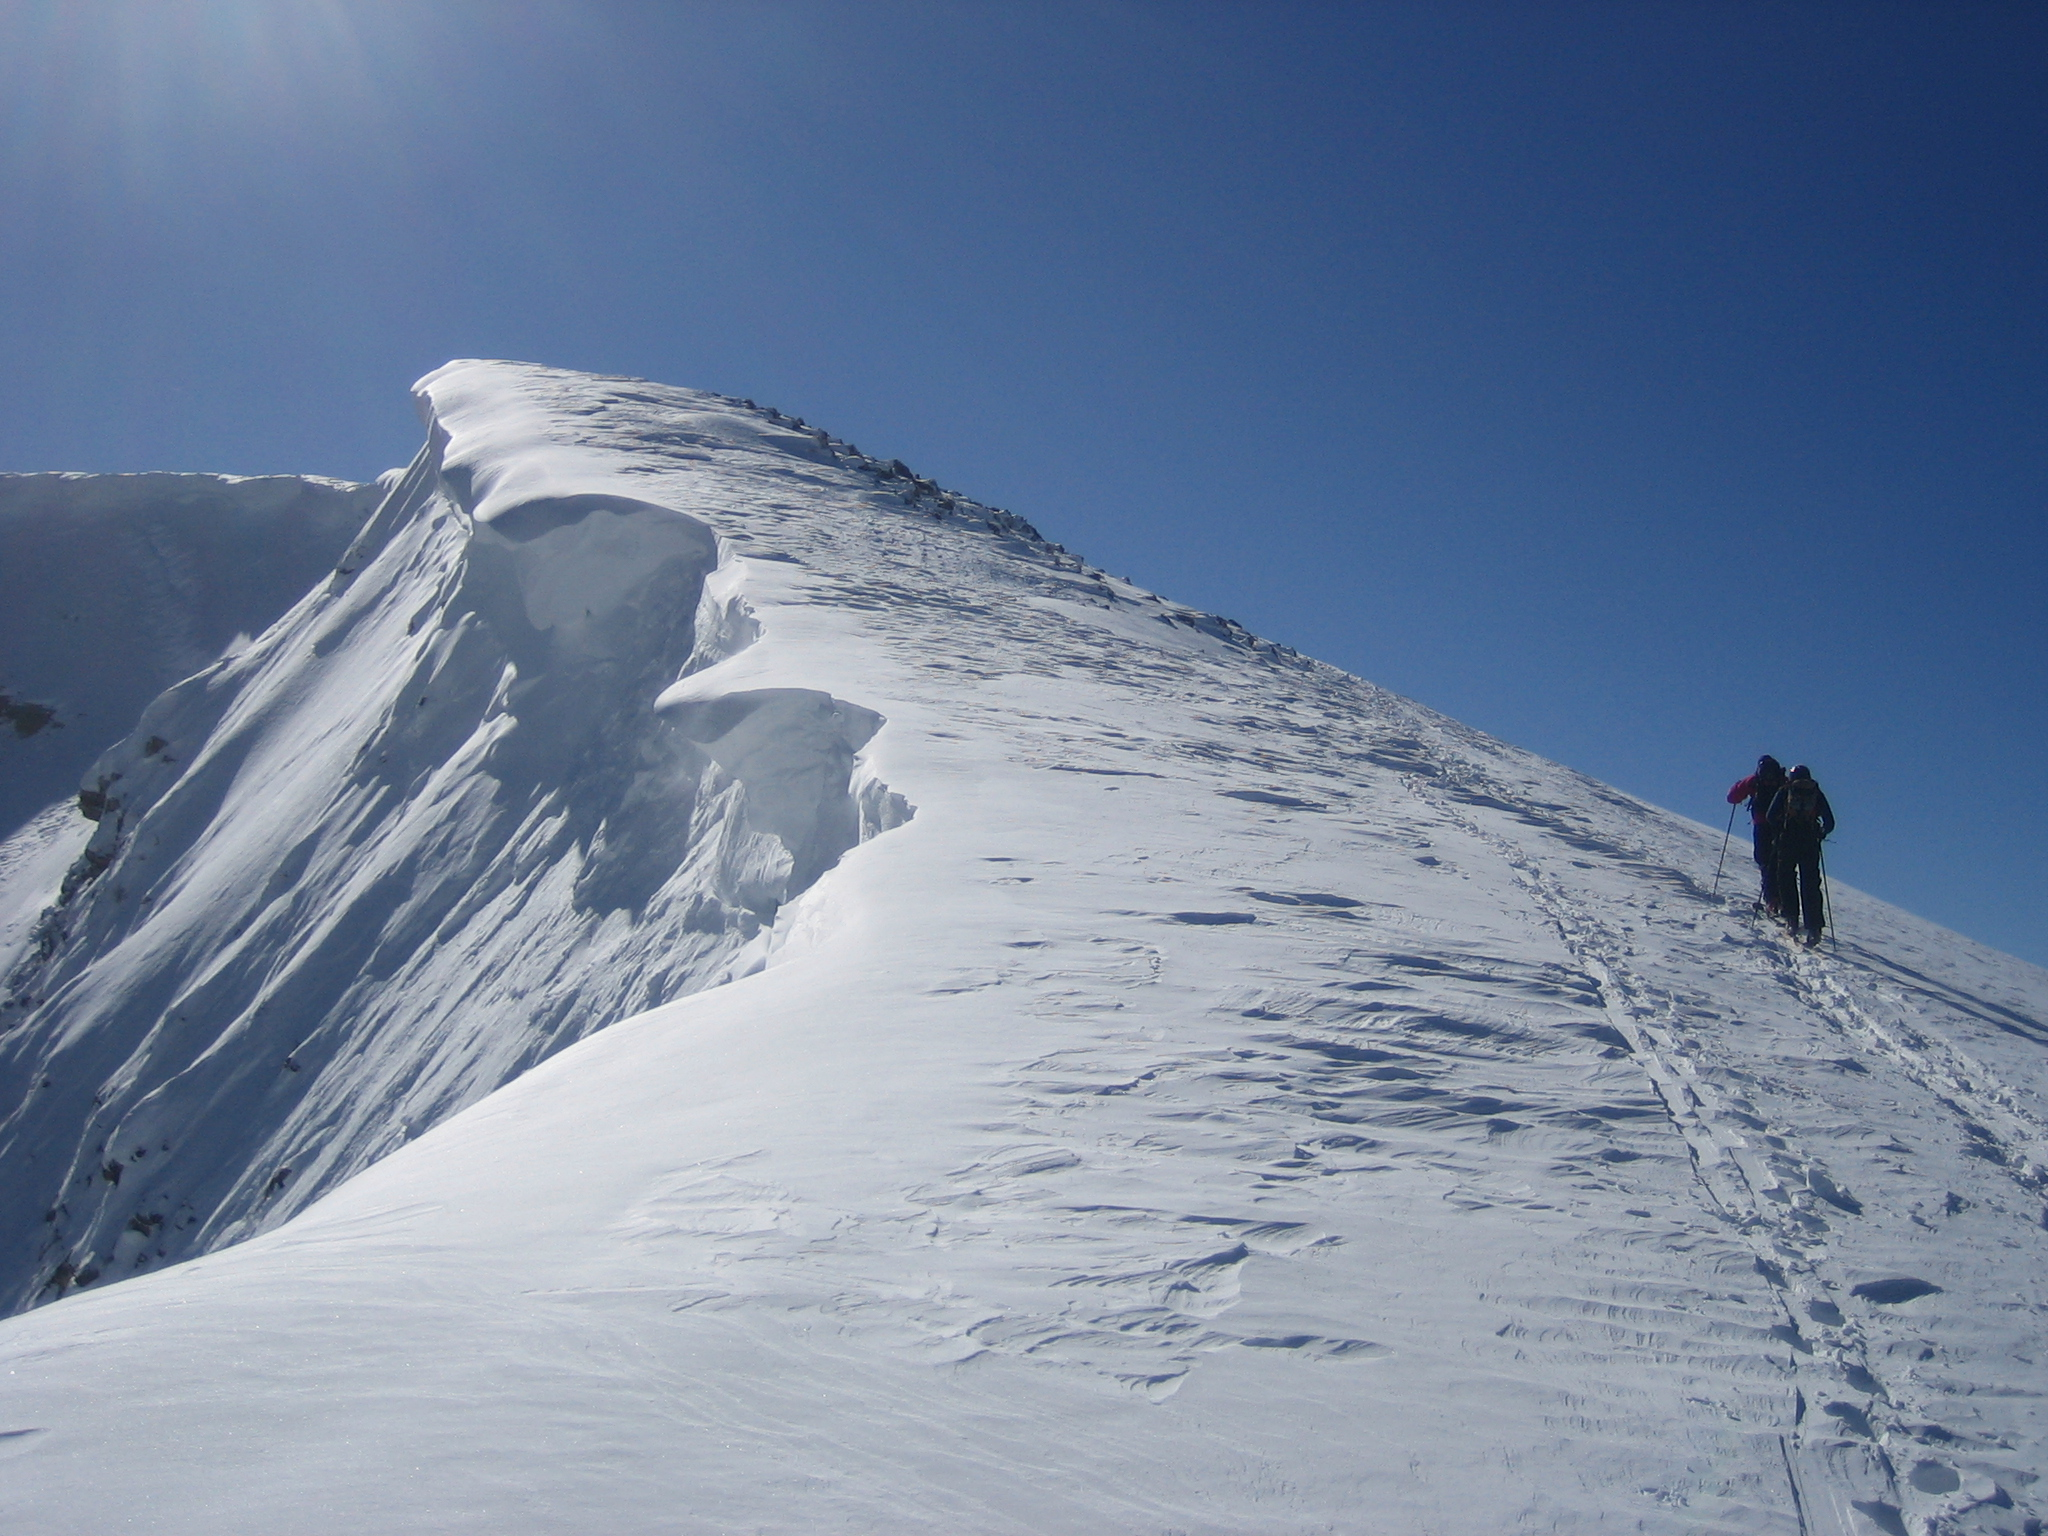 Skinning to the top